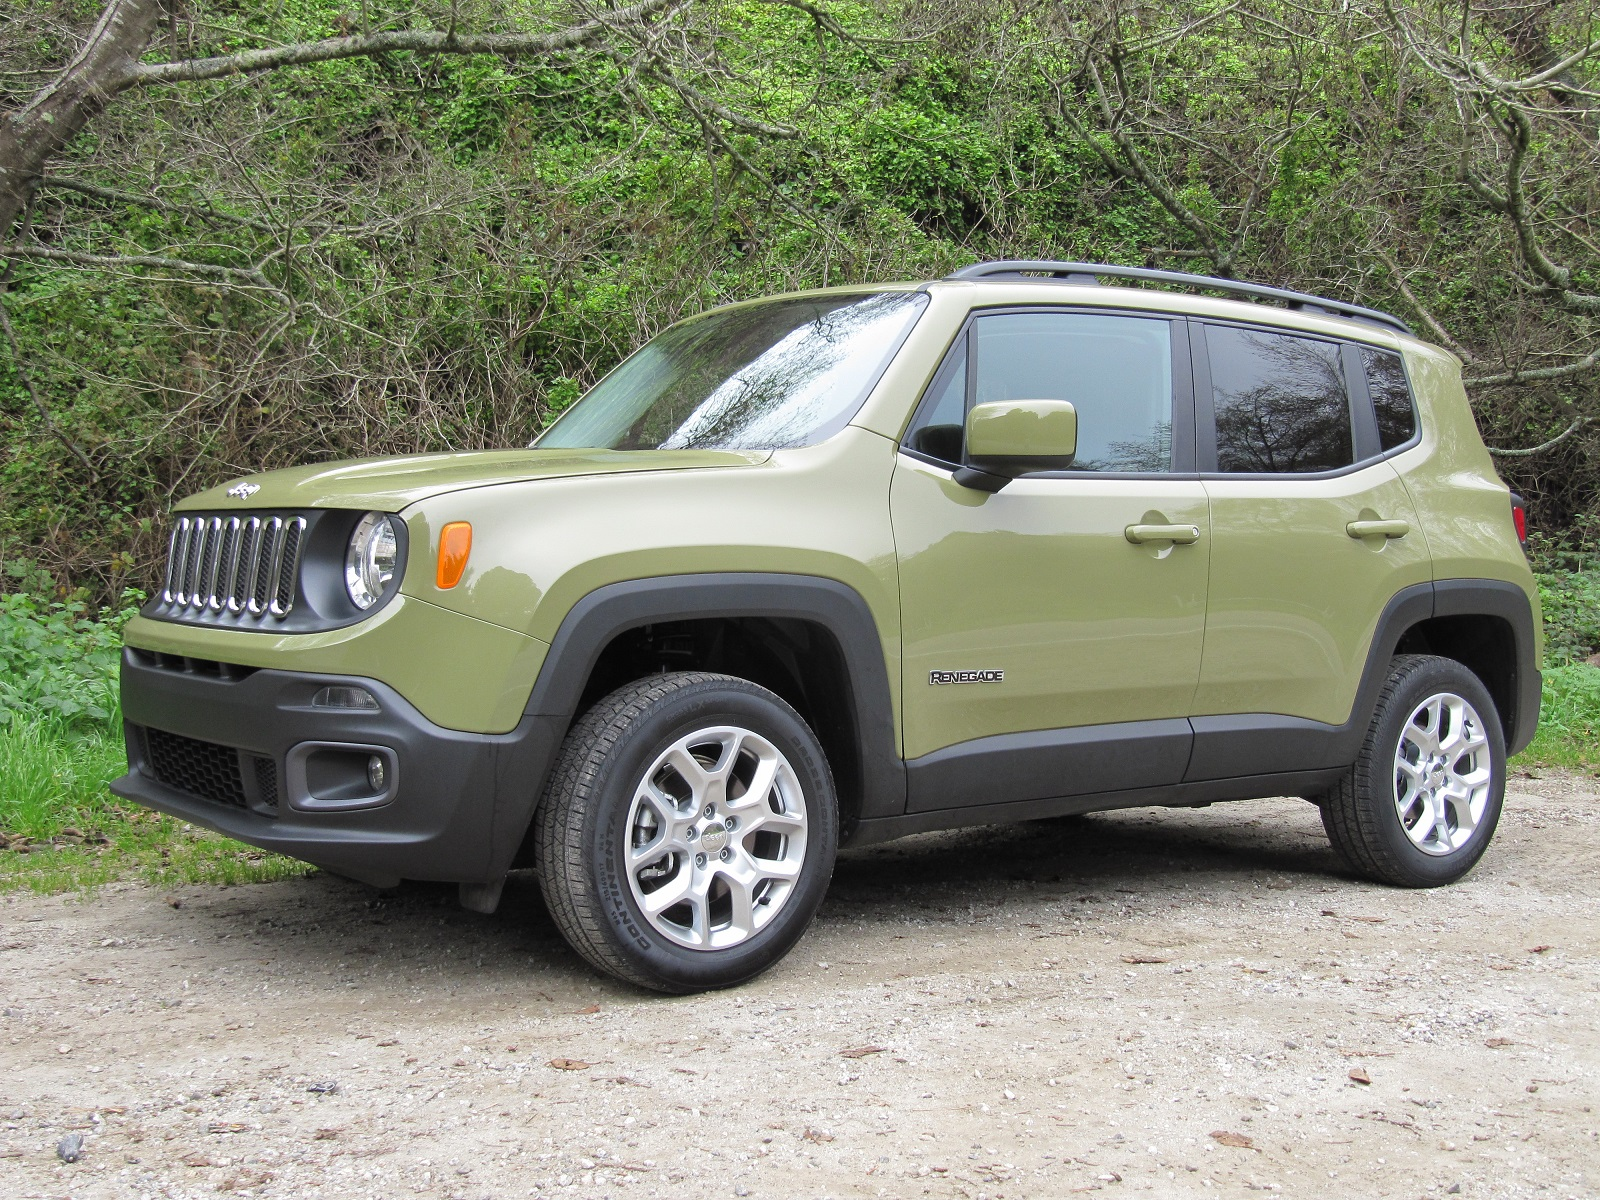 Jeep Renegade Vs Chevrolet Trax Compare Cars